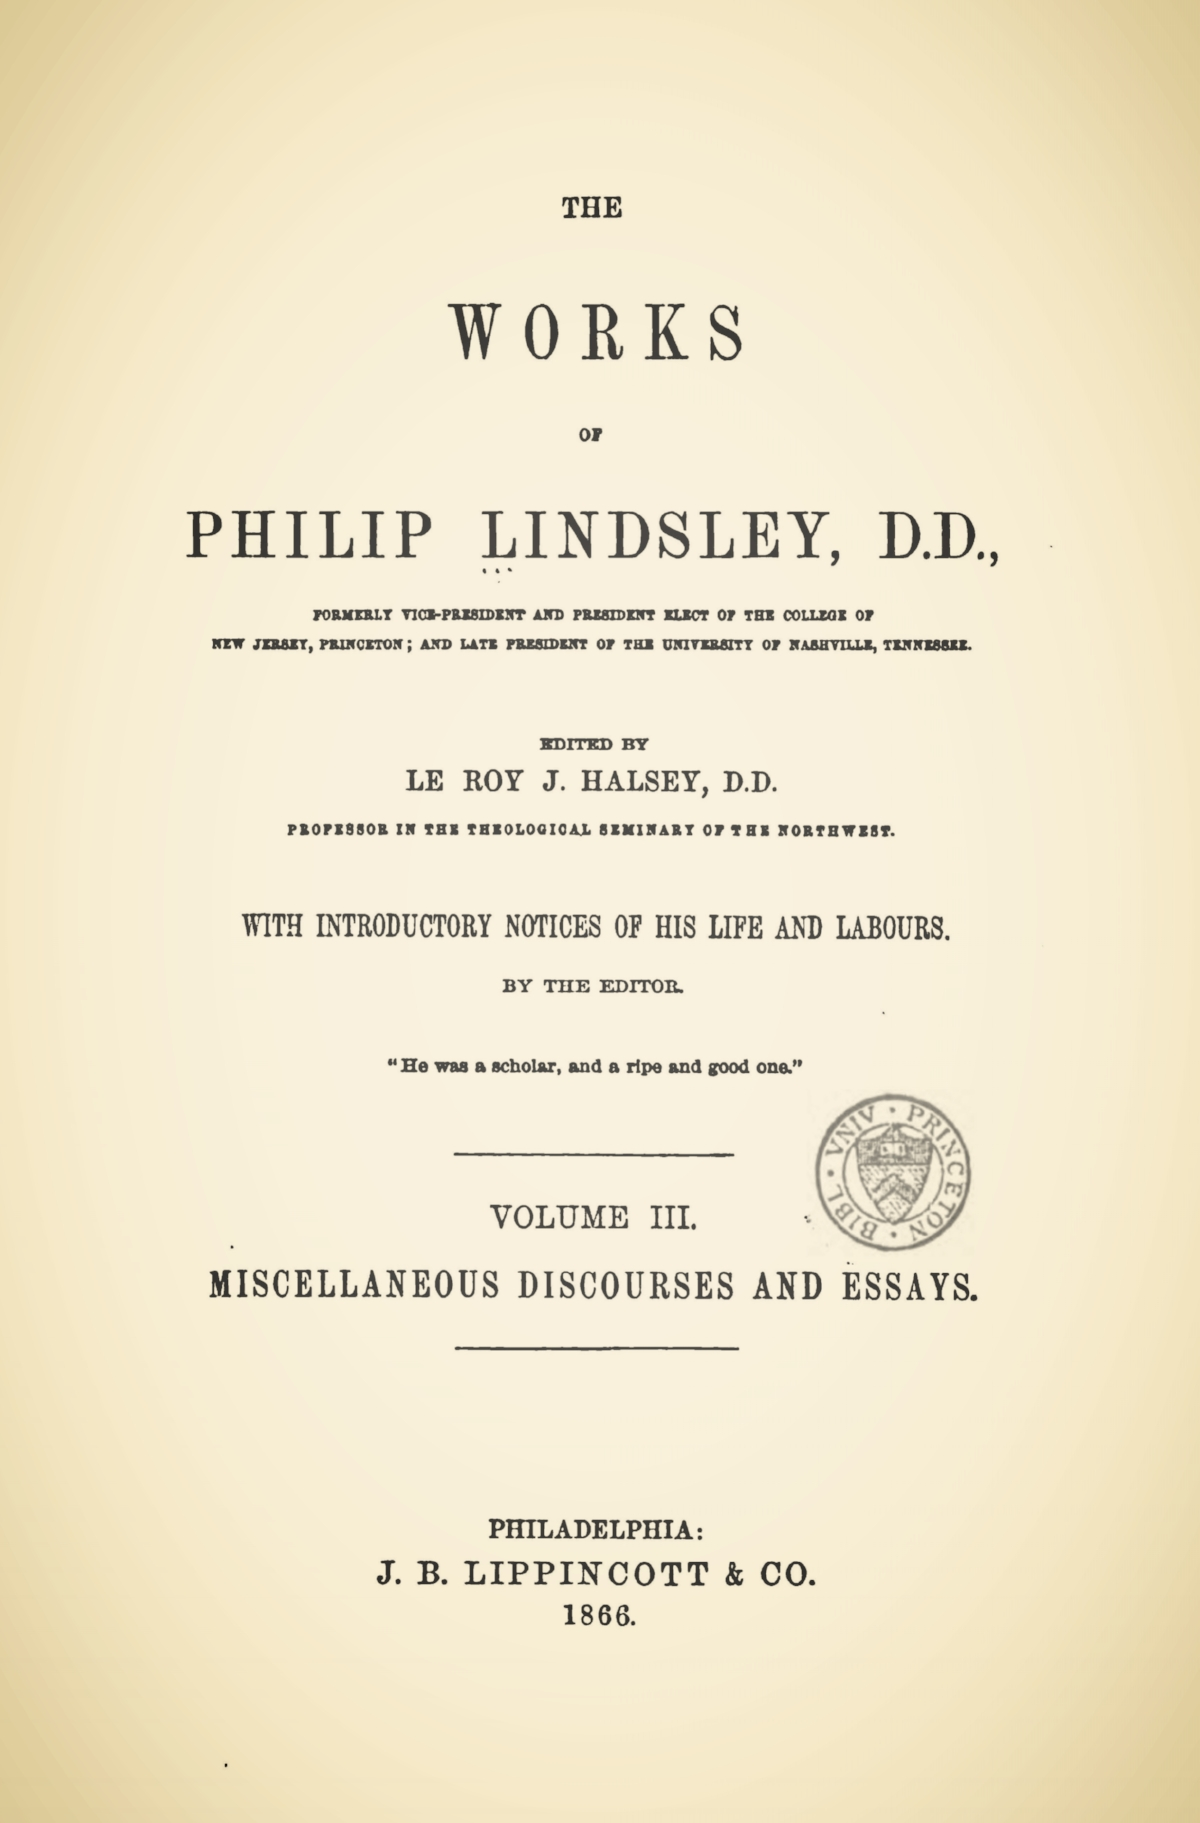 Lindsley, Philip, The Works of Philip Lindsley, Vol. 3 Title Page.jpg